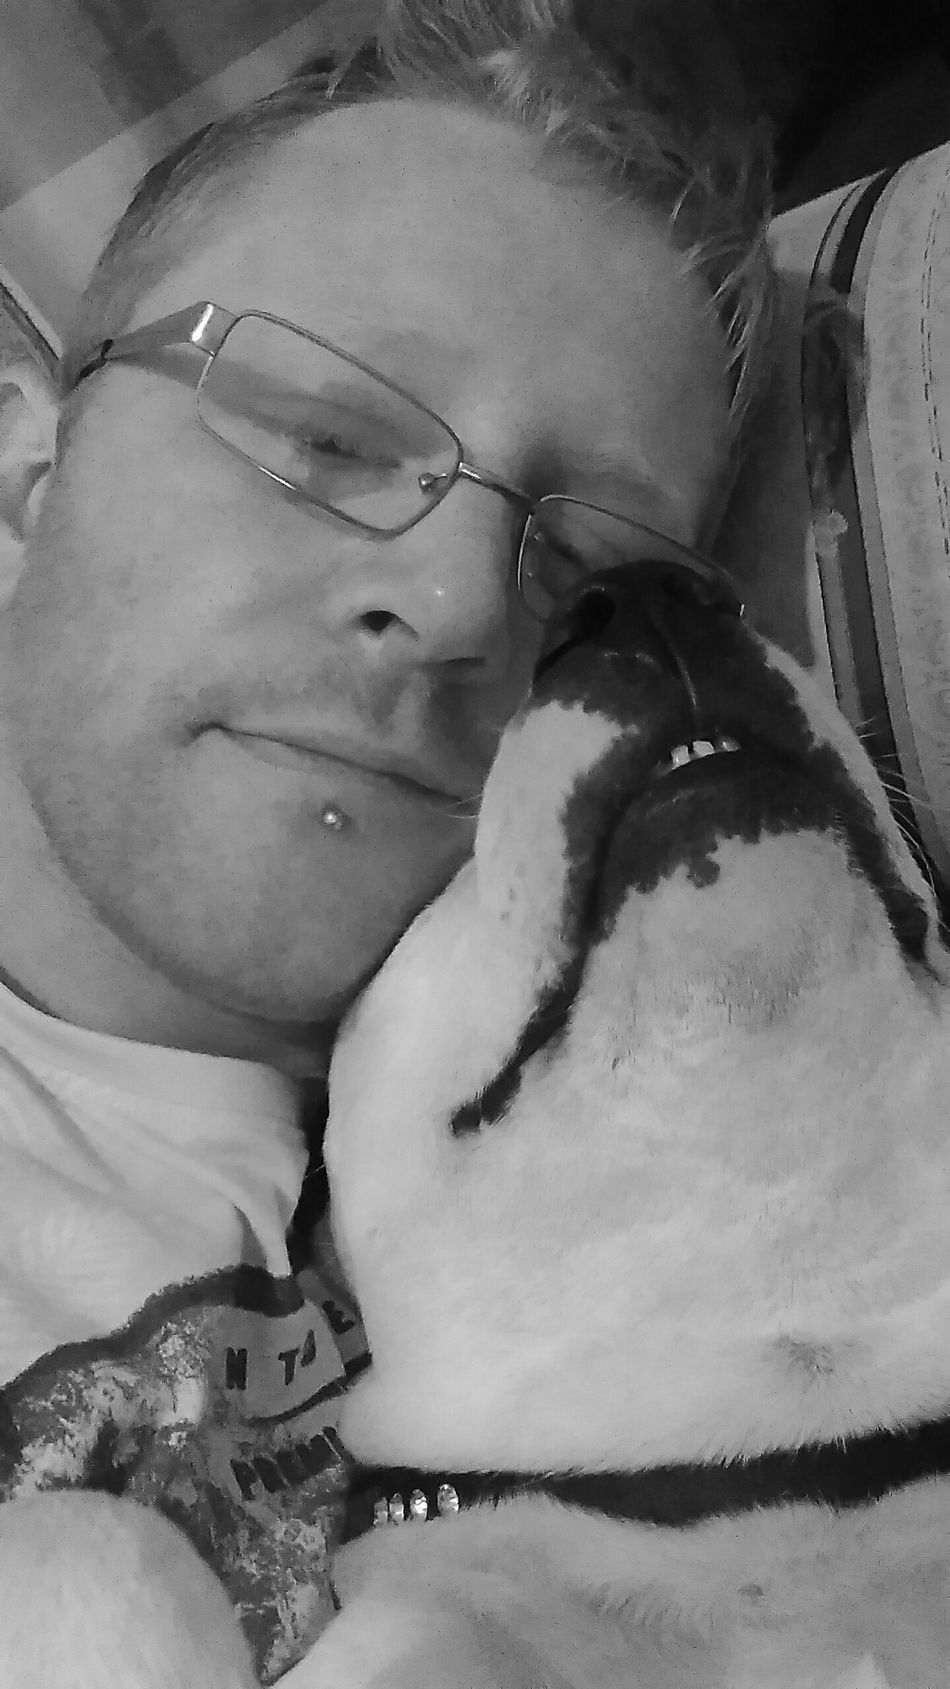 Staffylove Relaxation Sleeping Lying On Back Domestic Life Blackandwhite Staffordshire Bull Terrier Staffylover Staffygram Staffysmile Ilovemydog